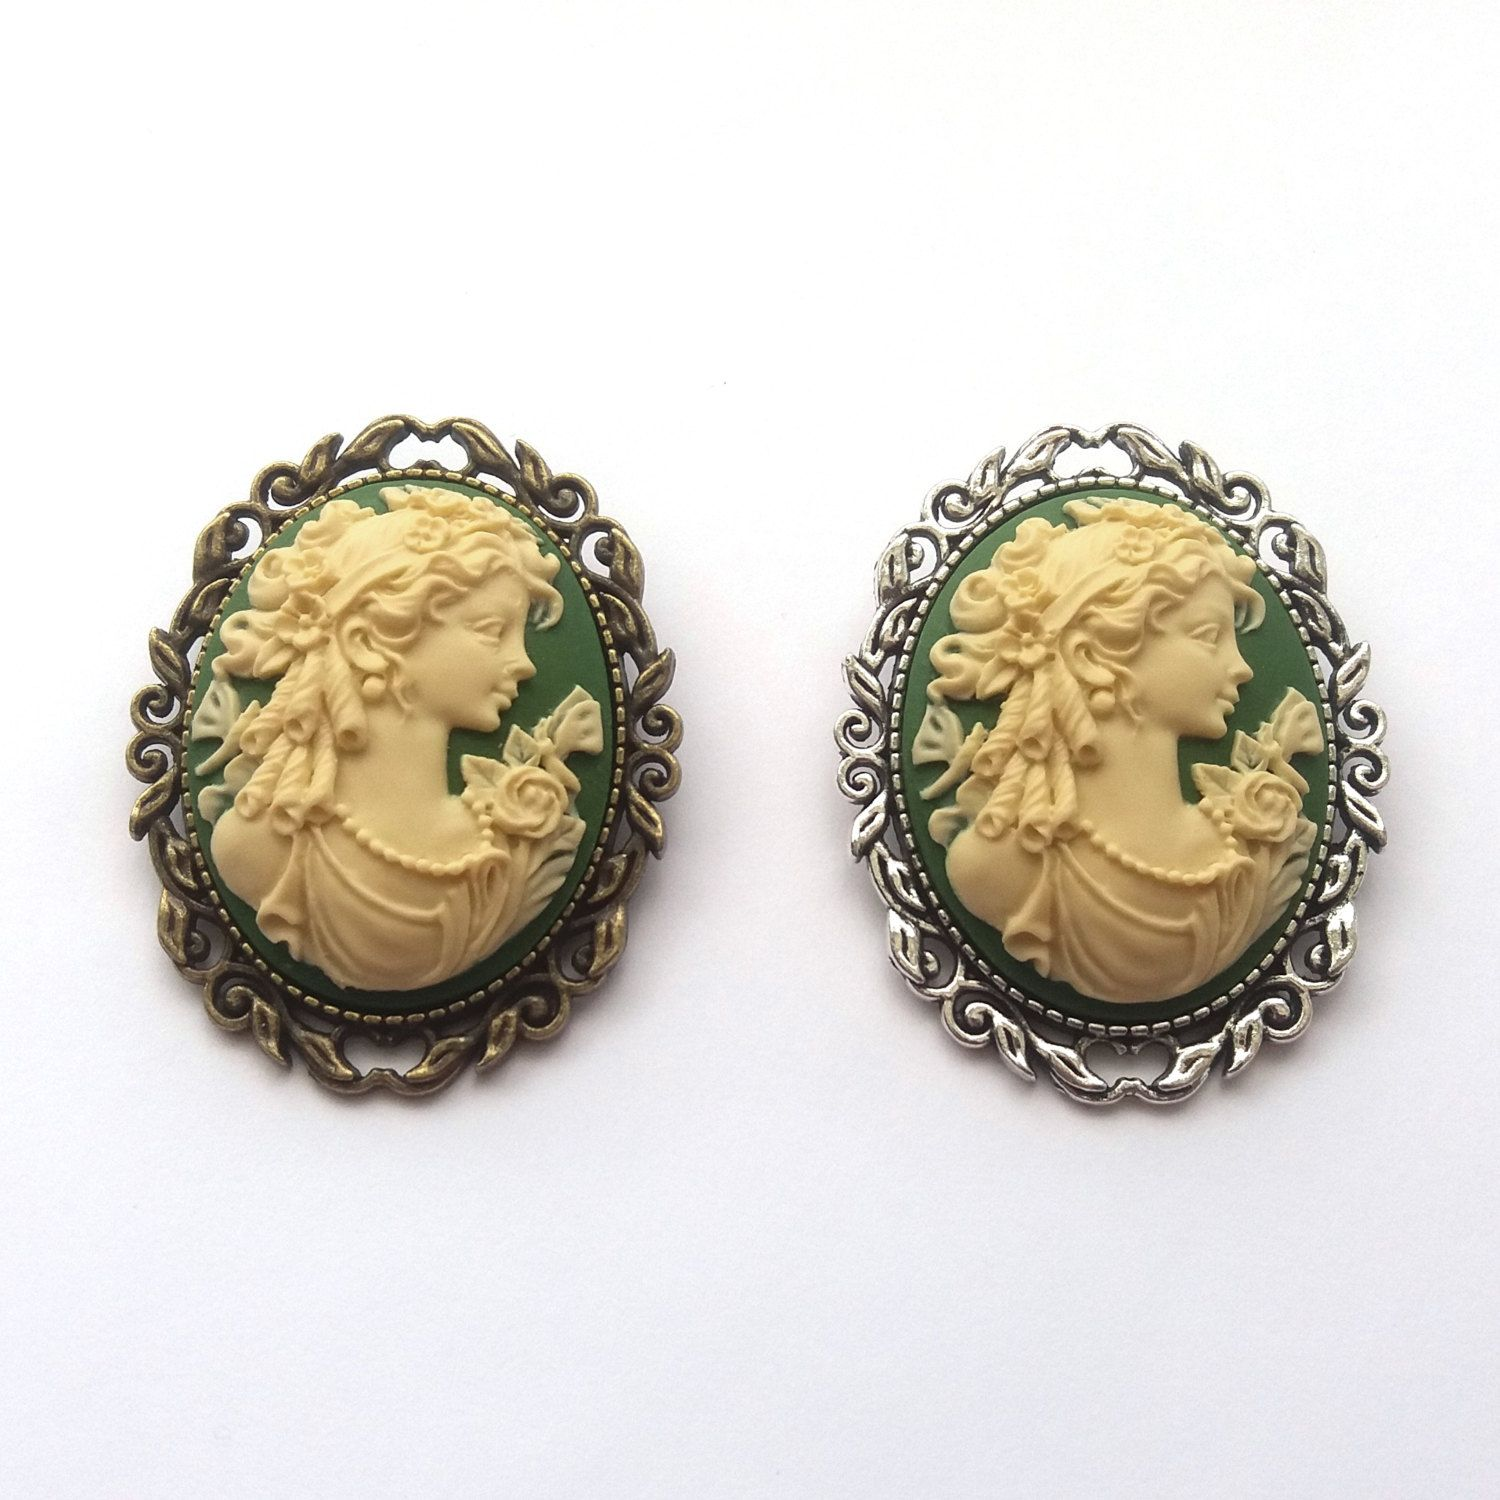 Classical Lady Green Cameo Brooch in Bronze or Silver by TemporalFlux on Etsy